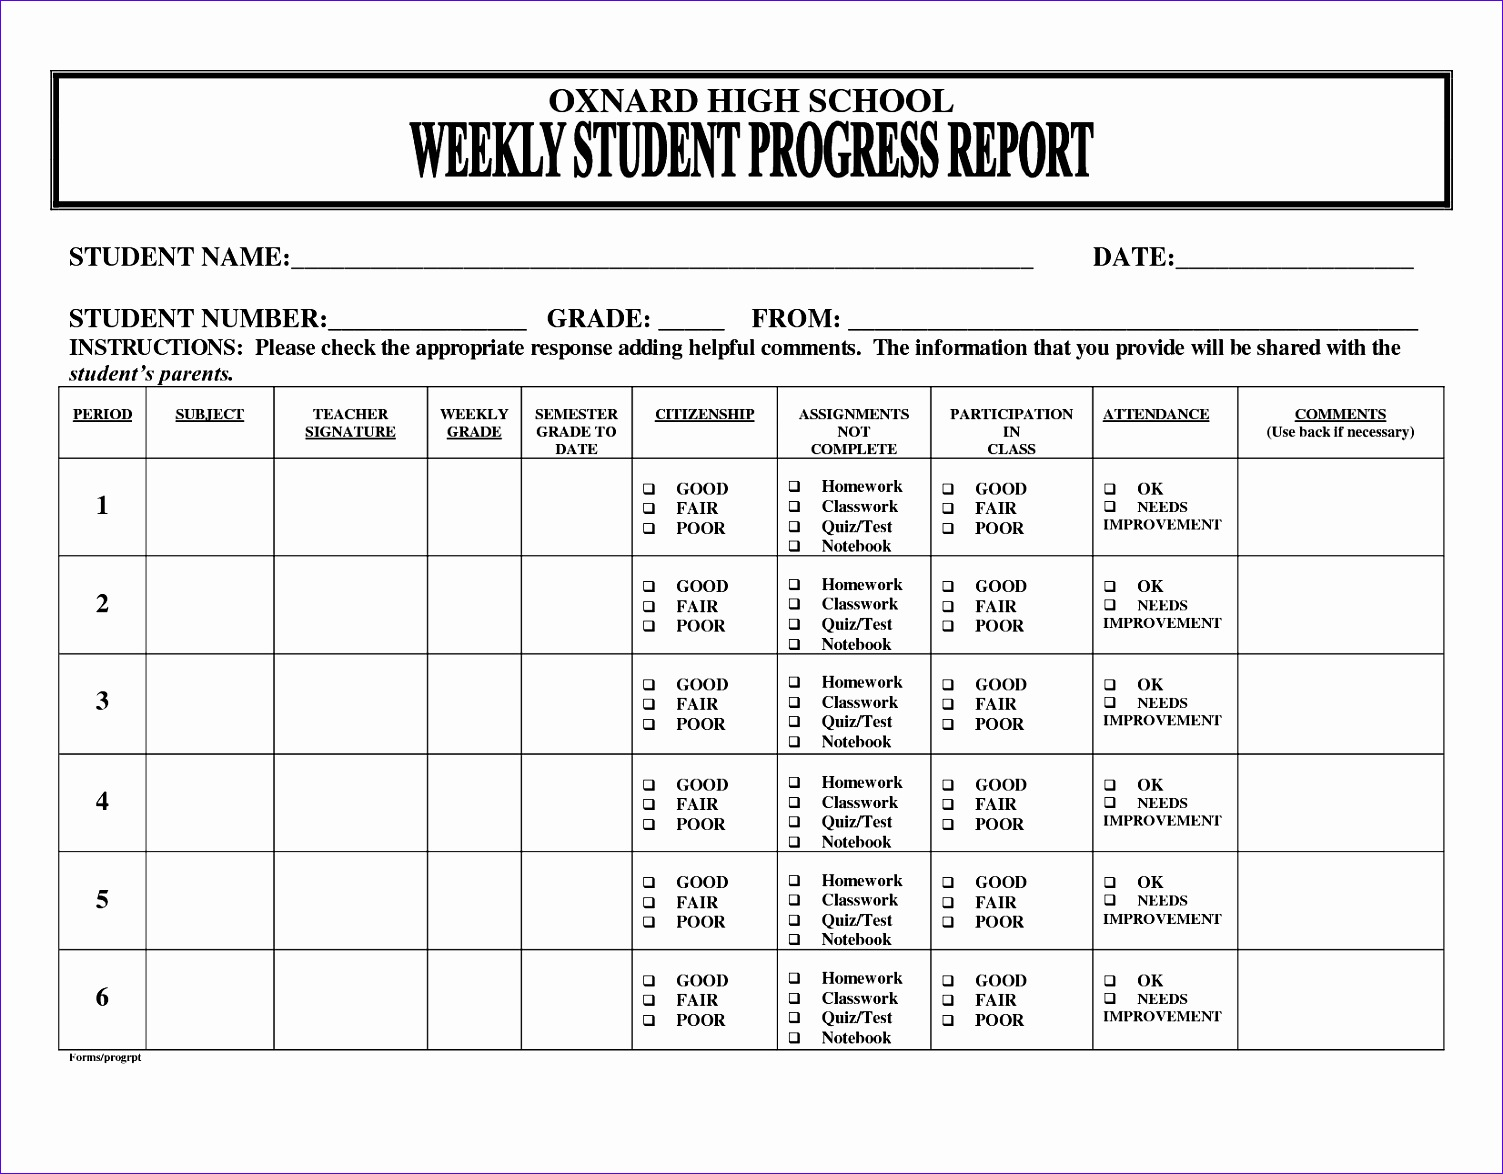 5 weekly progress report templatereport template document 4 blank expense ac plishment format